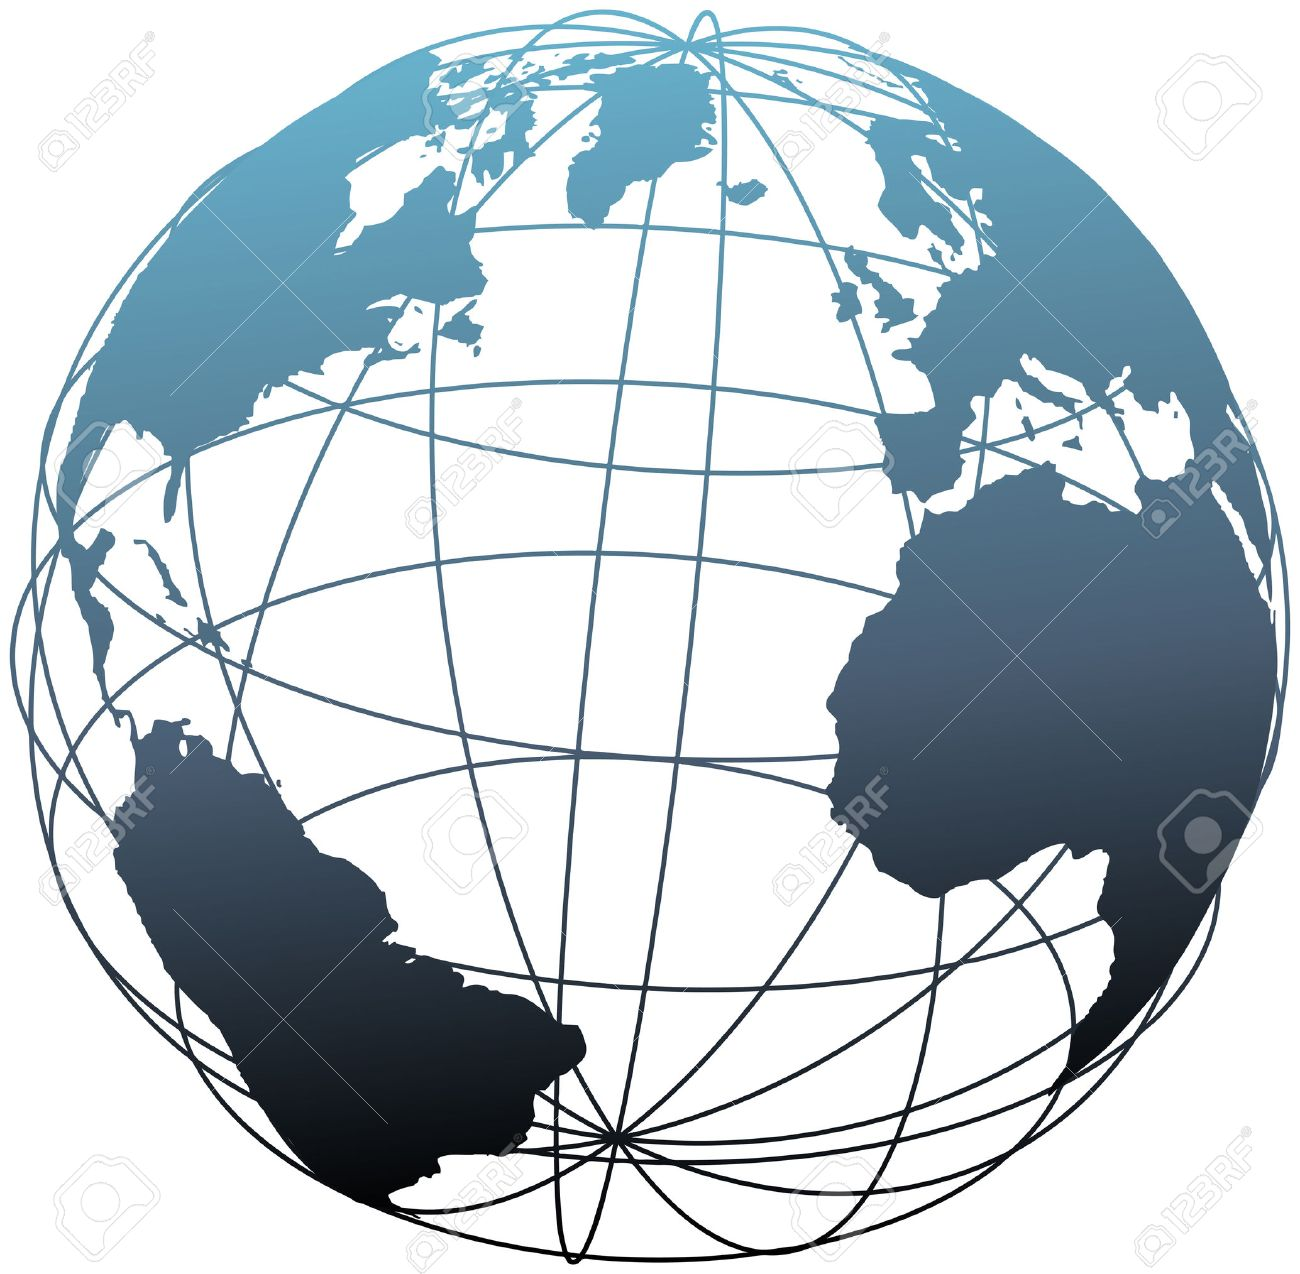 Global wireframe latitude longitude grid Atlantic Earth 3D globe Stock Vector - 8889516